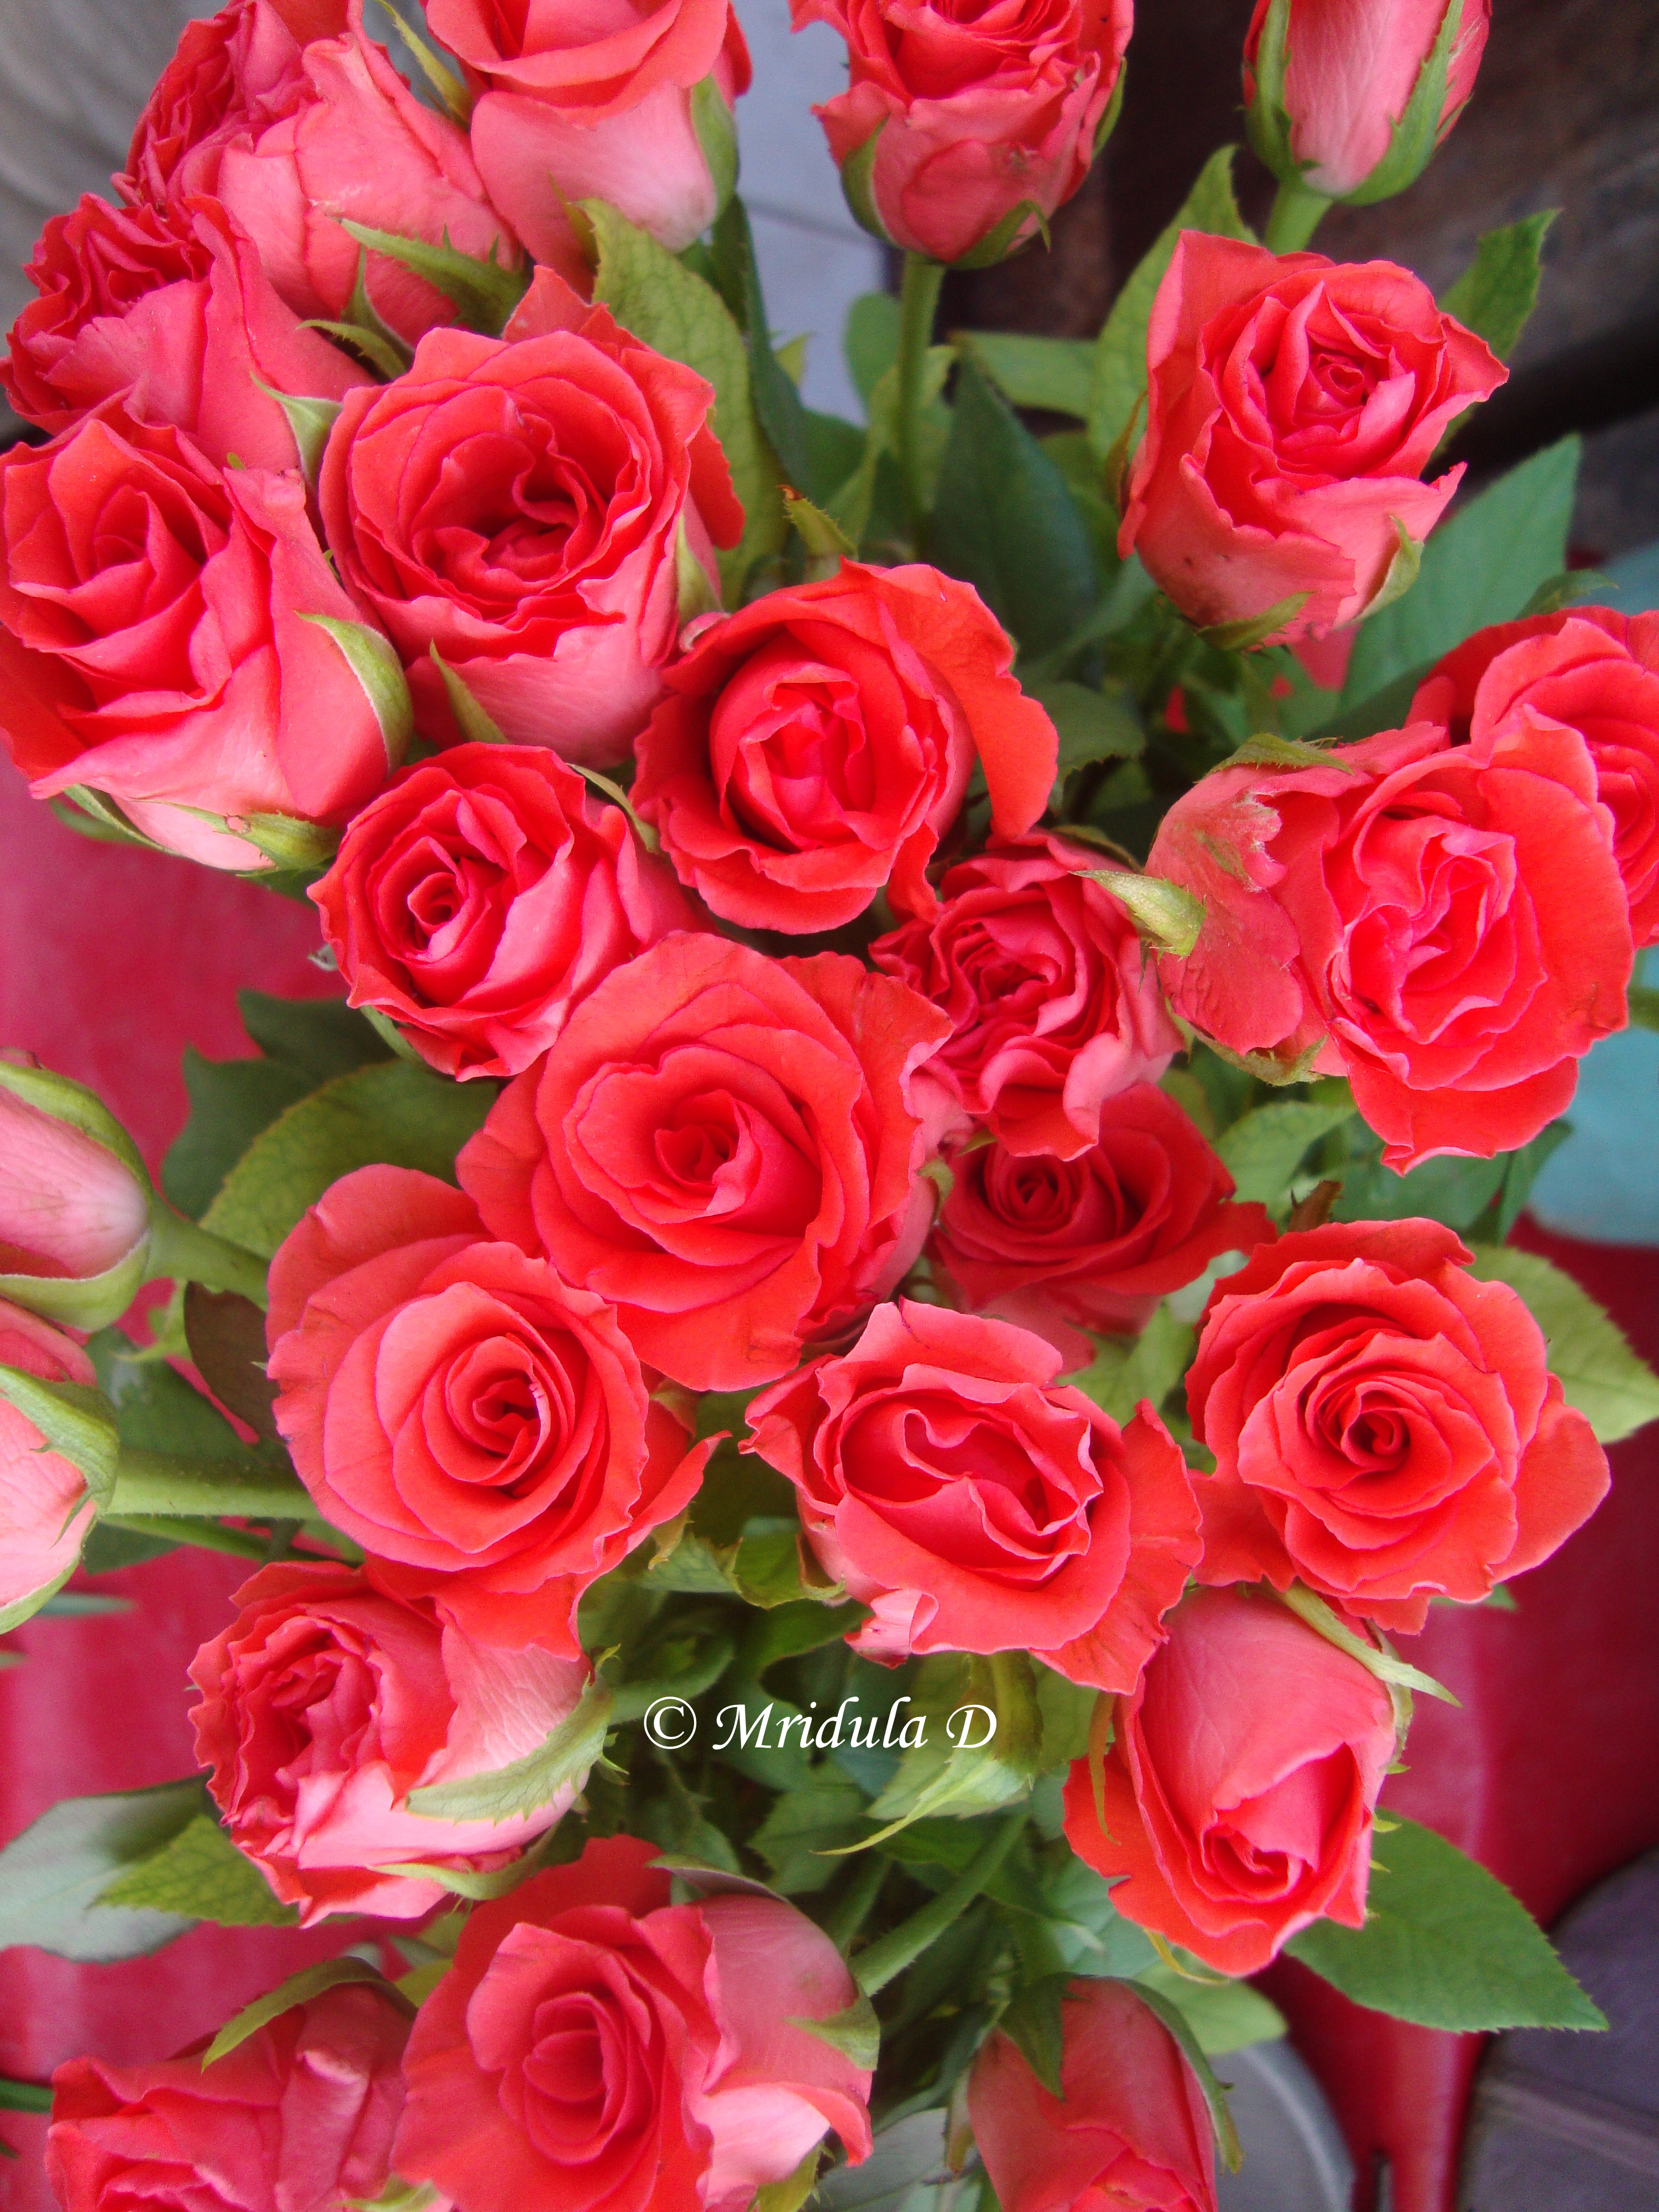 Friday Flowers A Bunch Of Pink Roses From The Pink City Travel